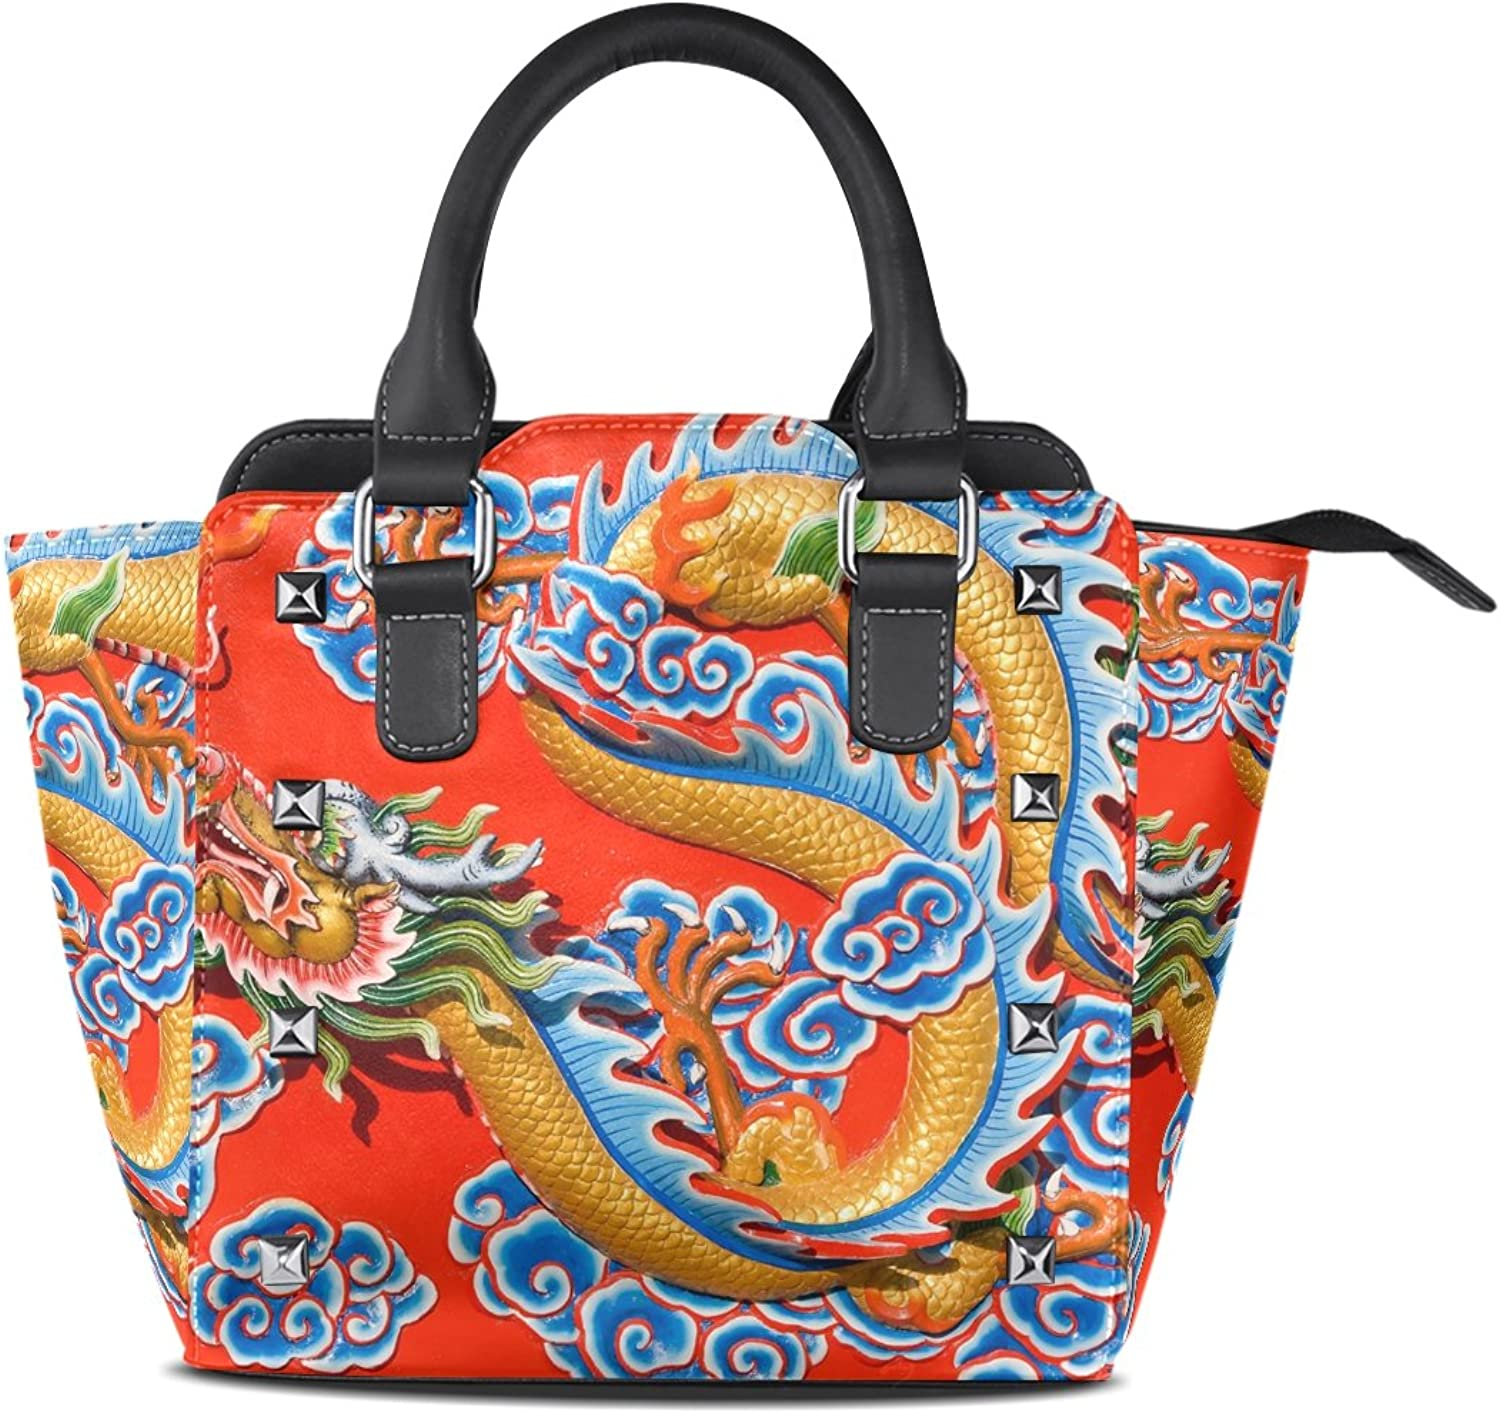 Sunlome Dragon Statue Print Handbags Women's PU Leather Top-Handle Shoulder Bags